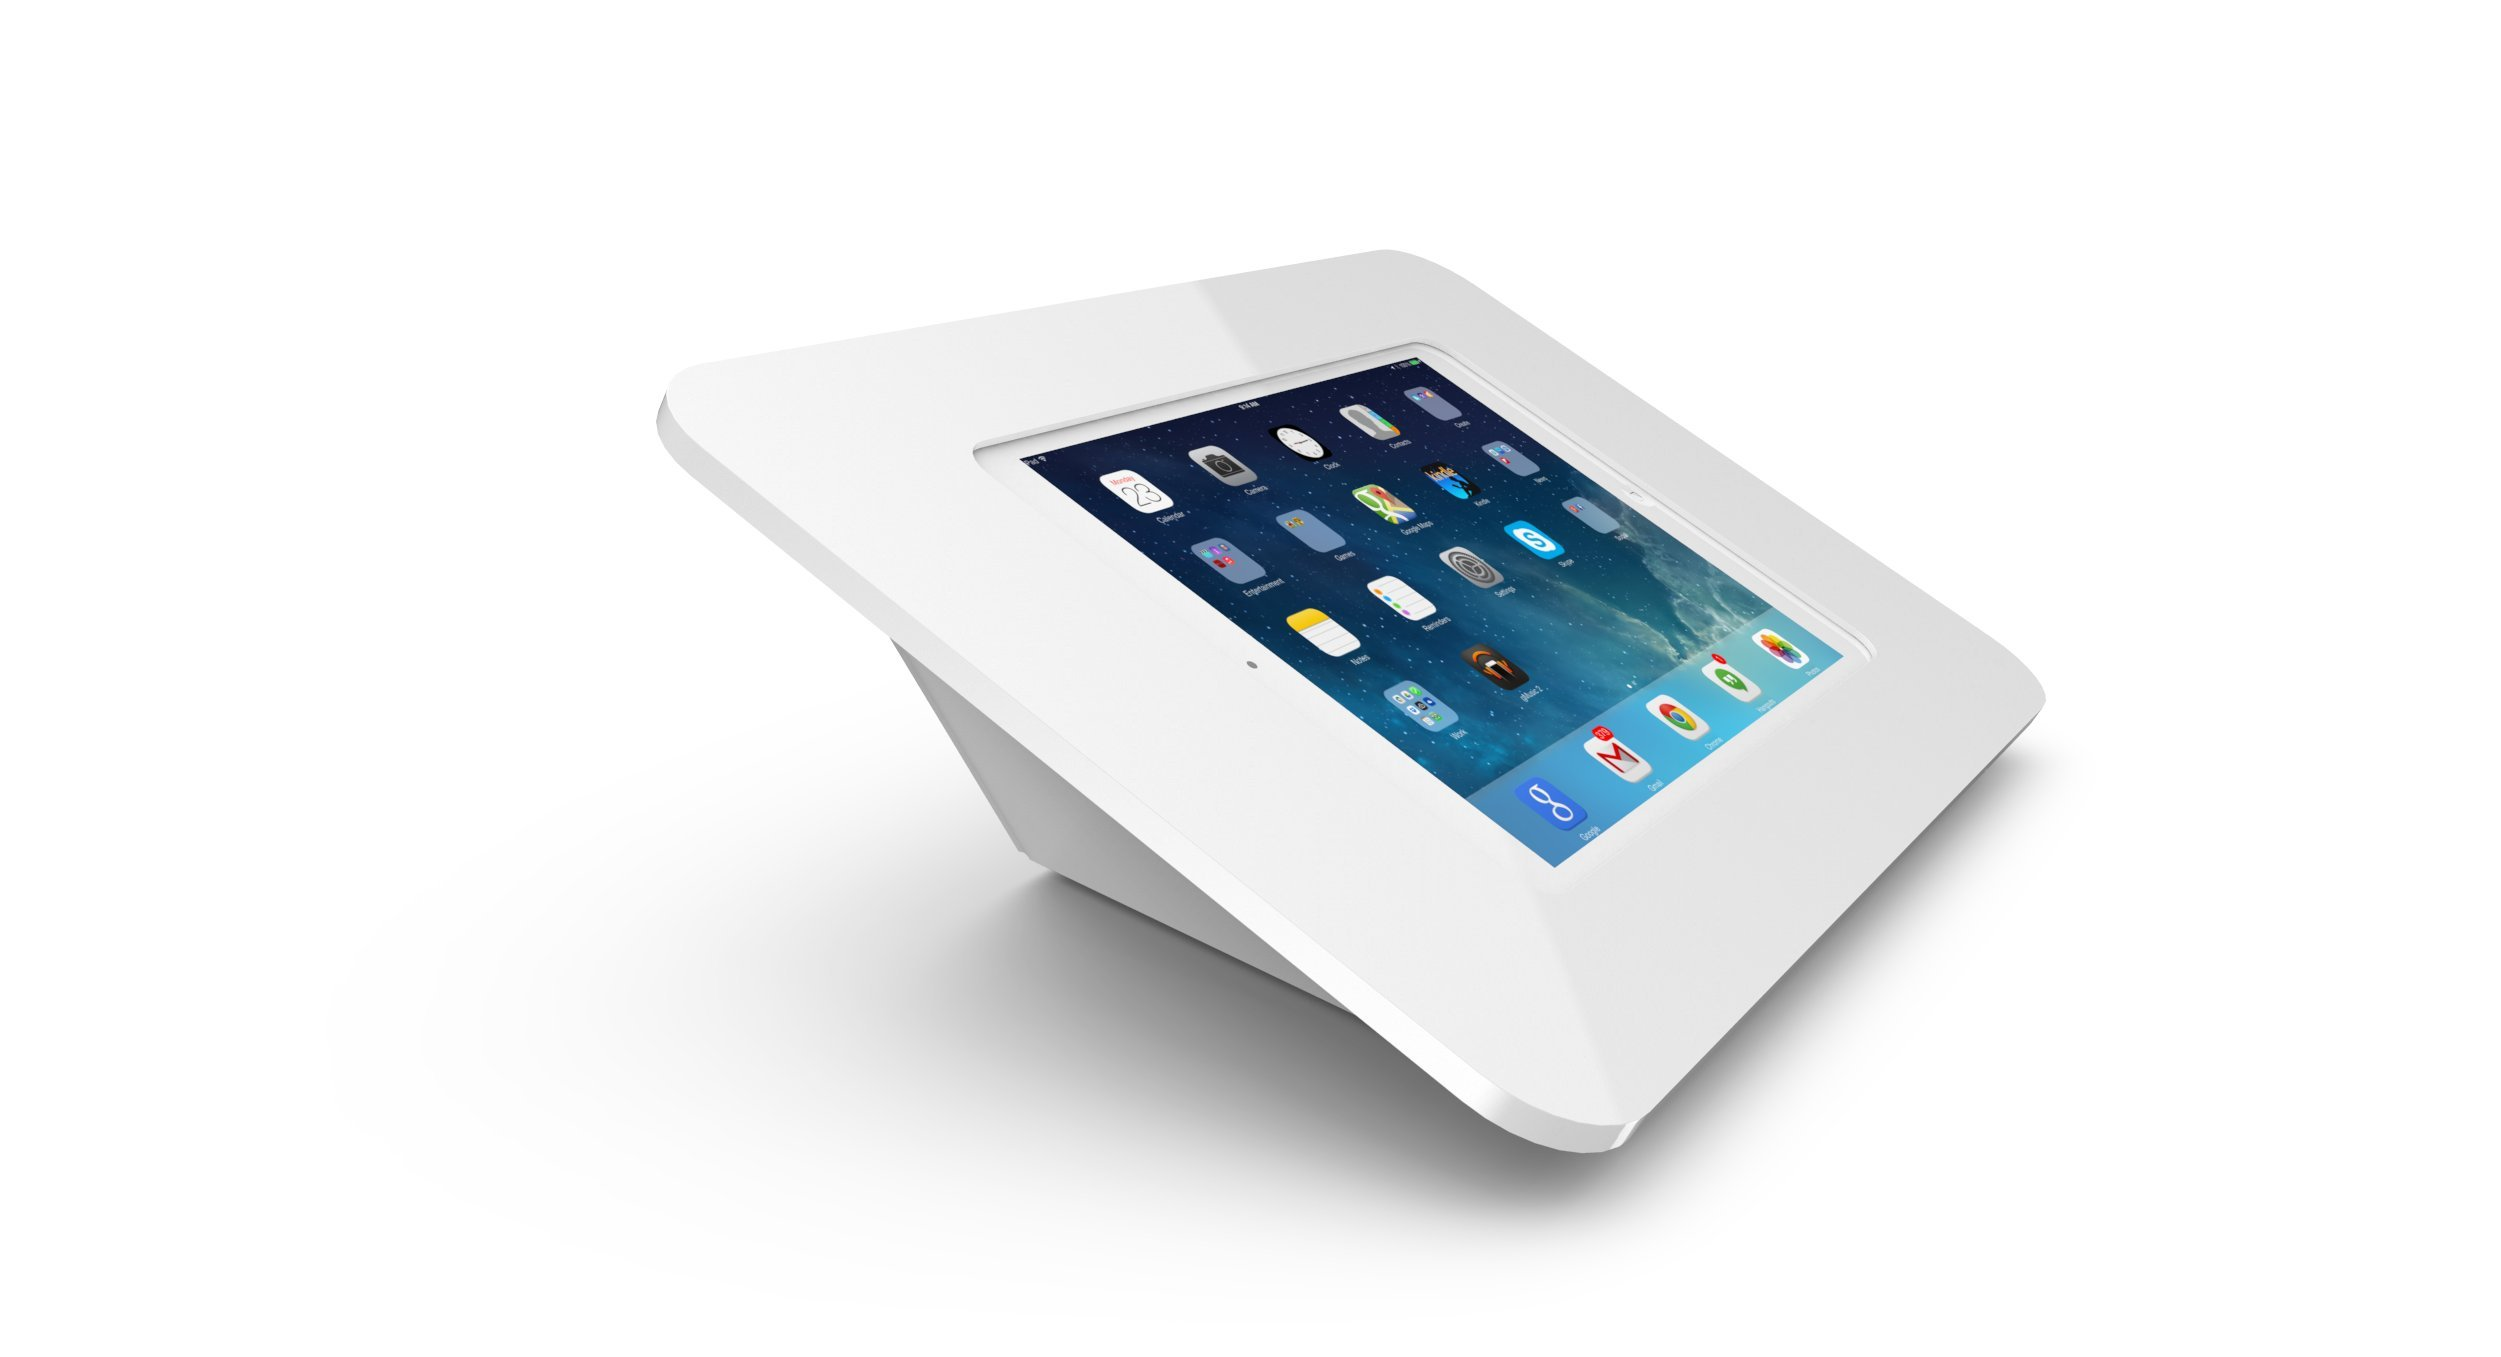 Maclocks 340W260ROKW Rokku Secure Enclosure Capsule Kiosk for iPad Air/Pro 9.7 Inch (White)